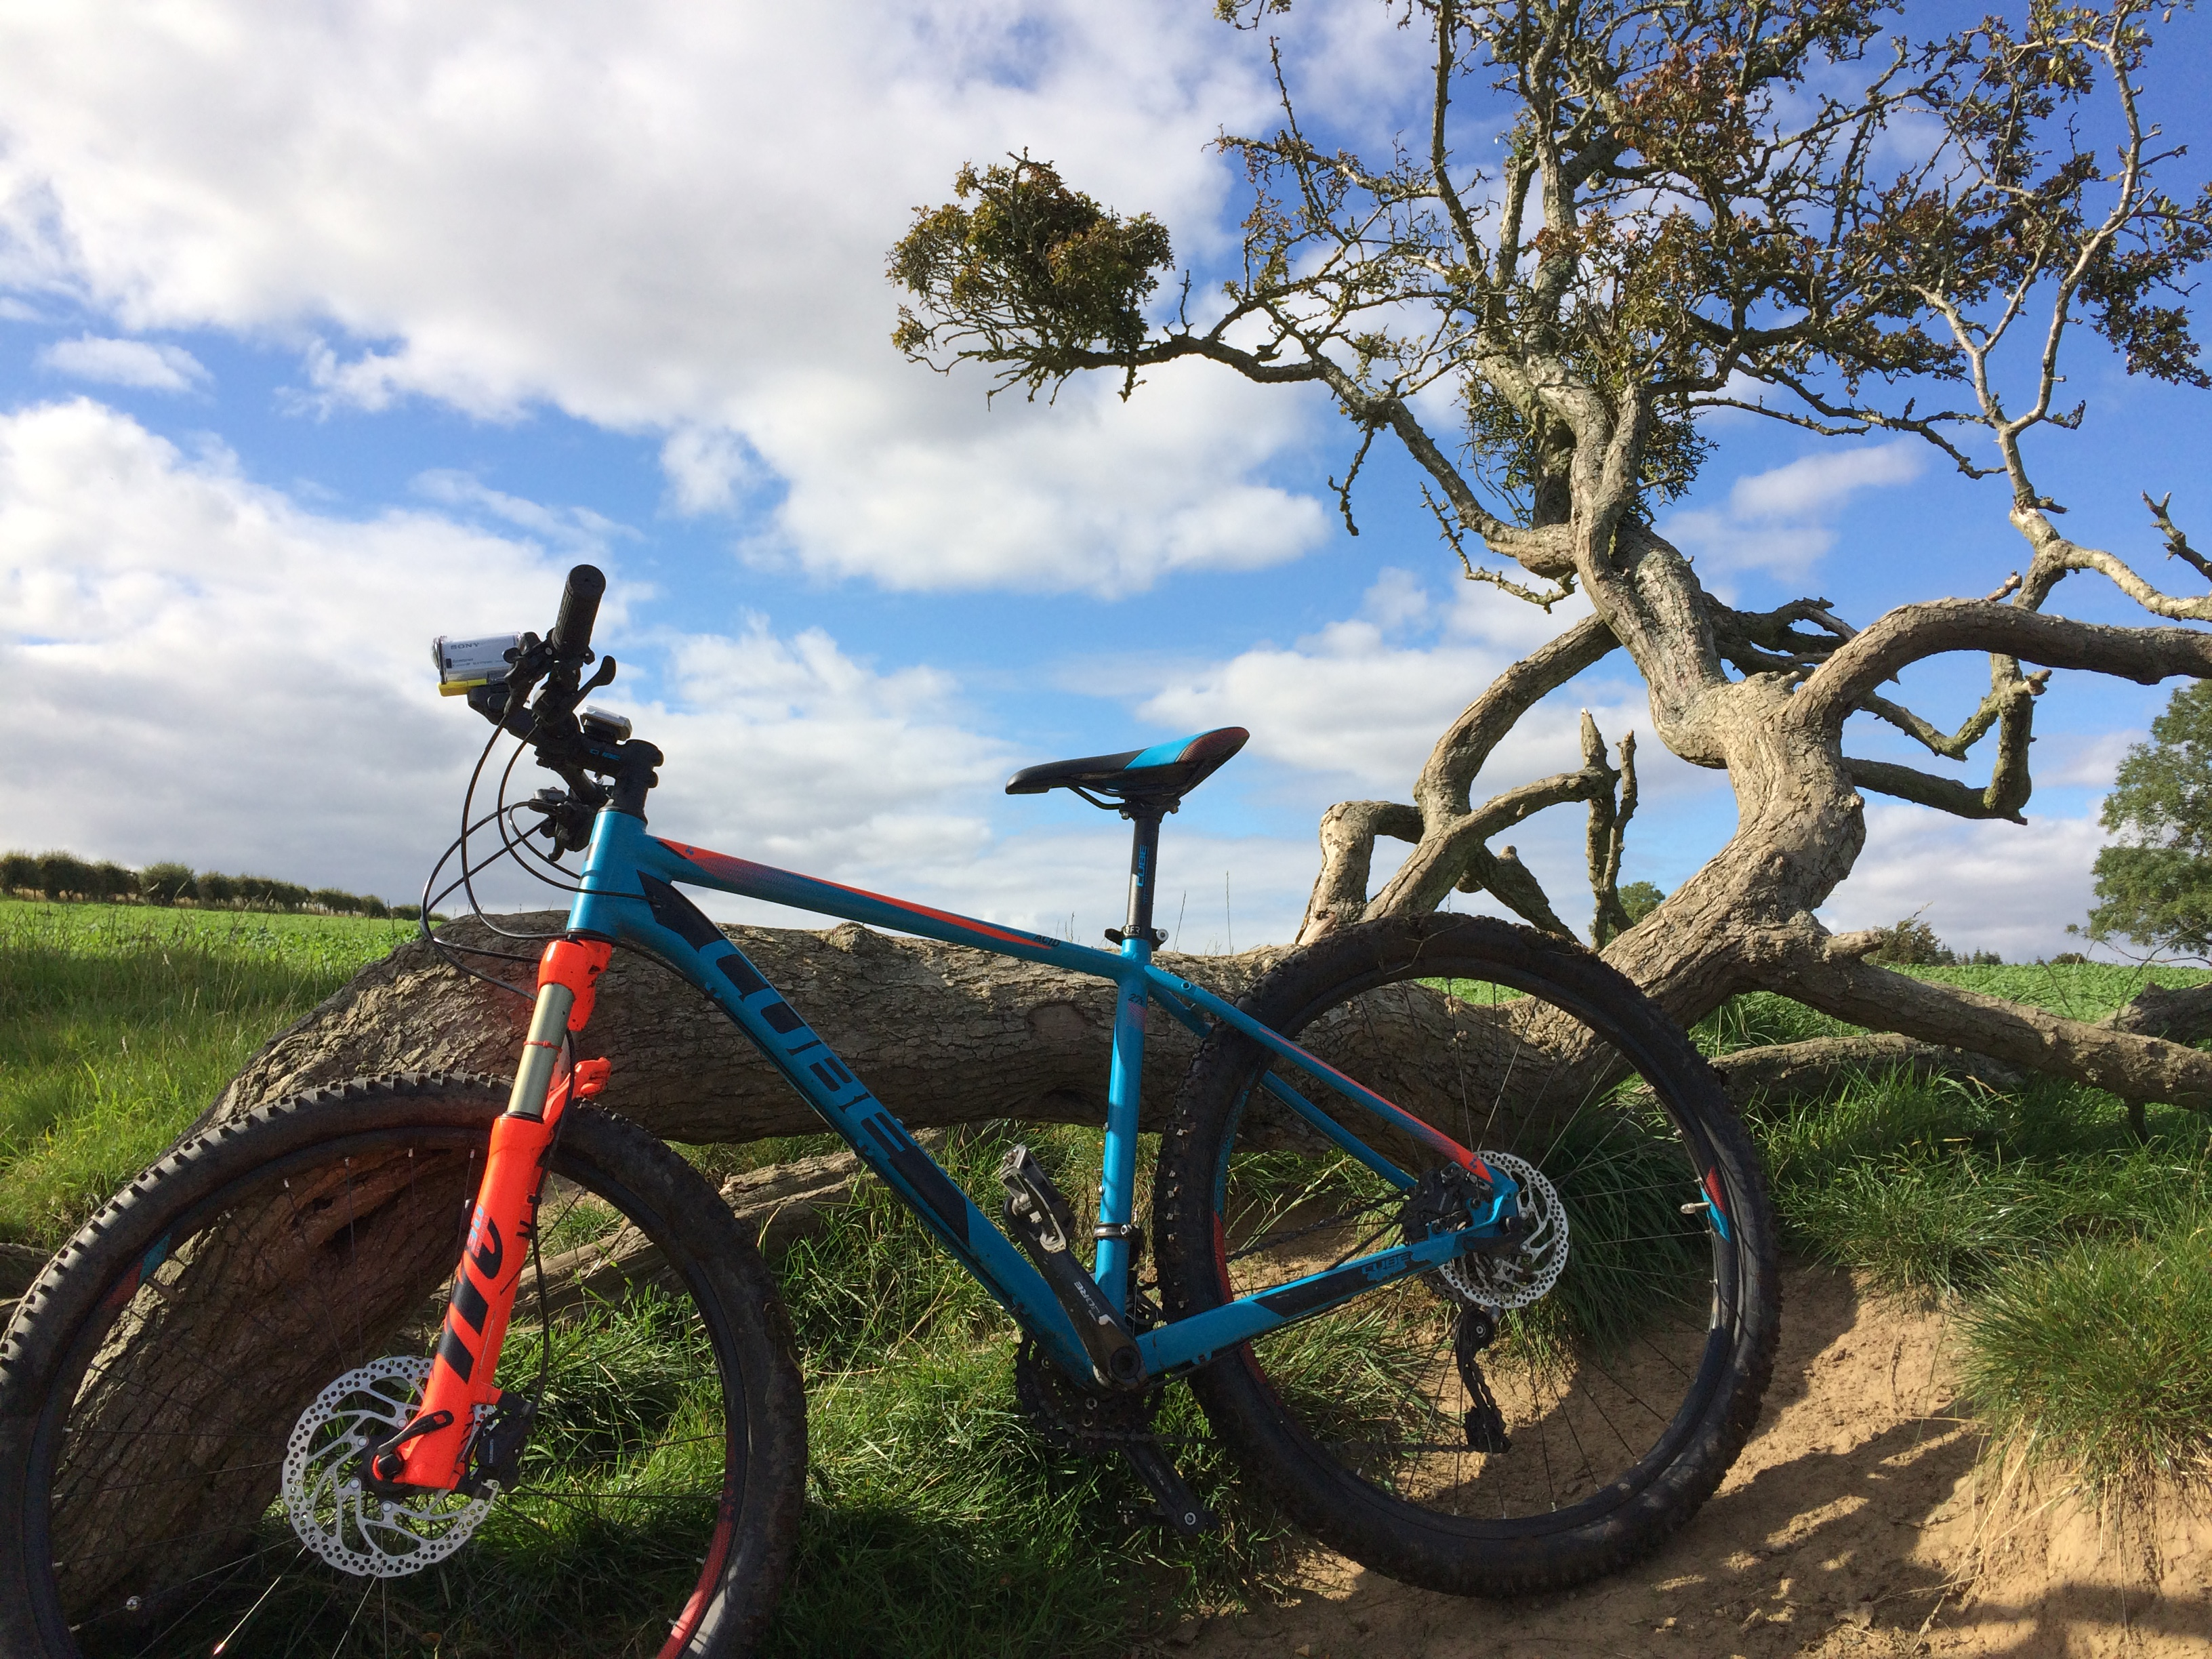 The Sandstone Way a Great MTB Route, Part I